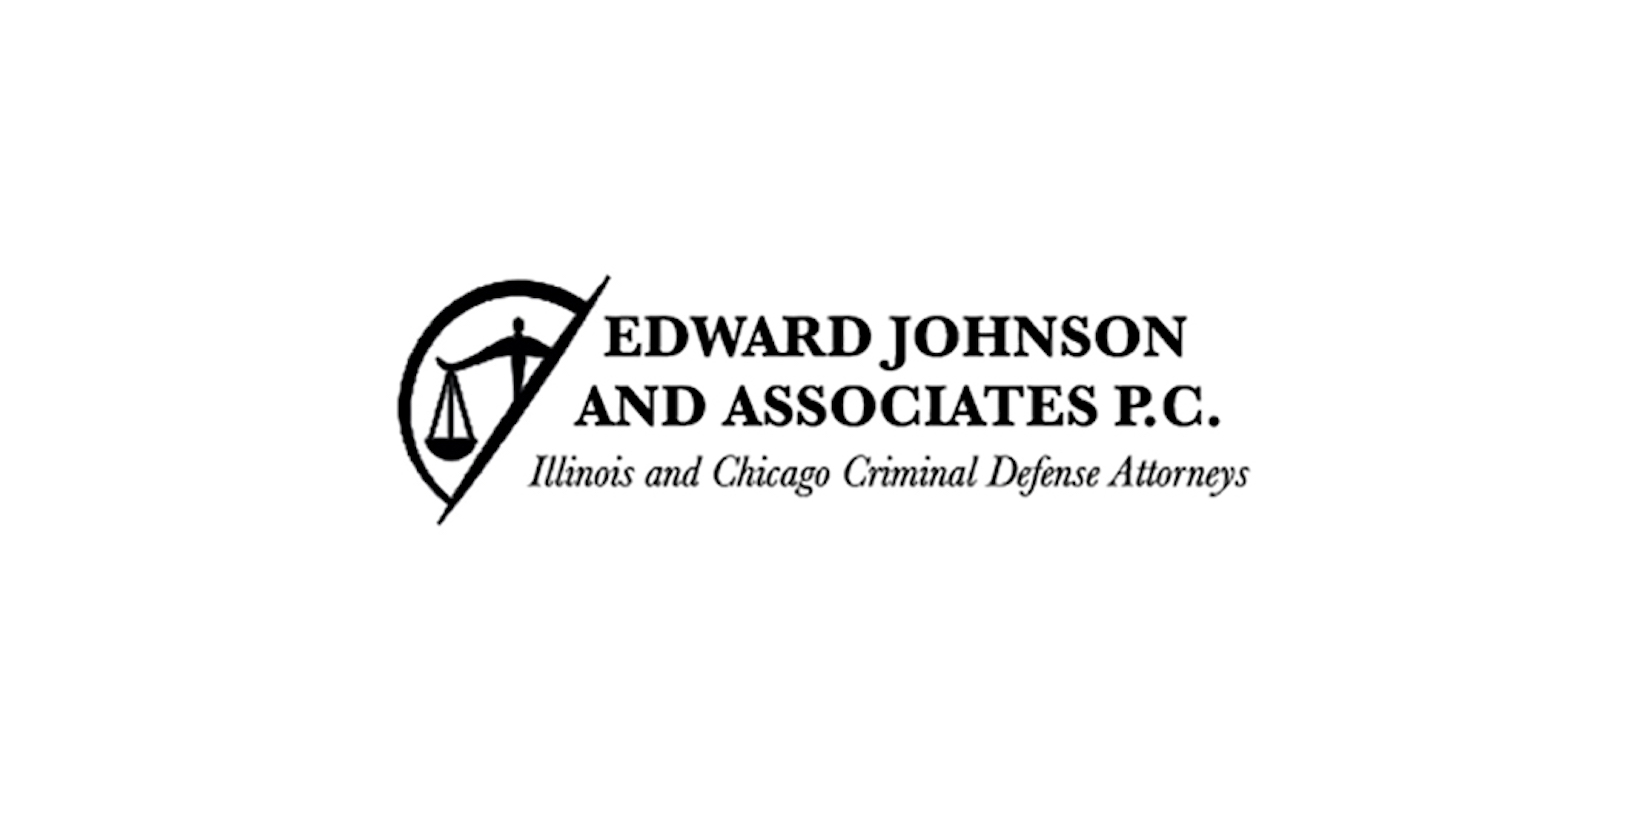 Top Criminal Defense Firm in Chicago